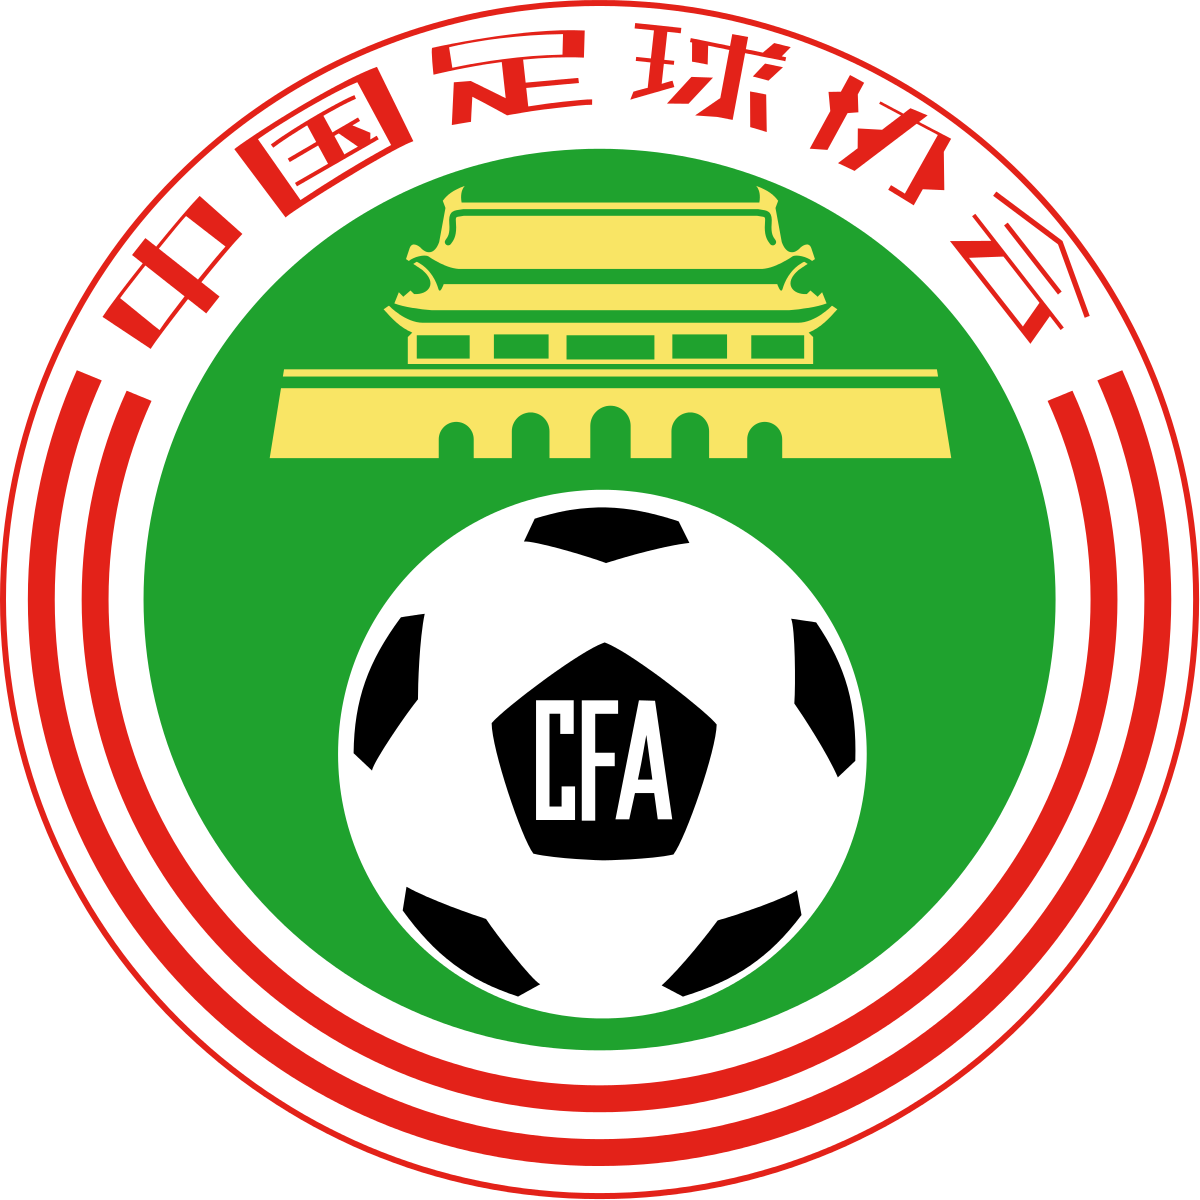 1200px Chinese Football Association S Logo Svg Png 1200 1200 Logo S Voetbal Club